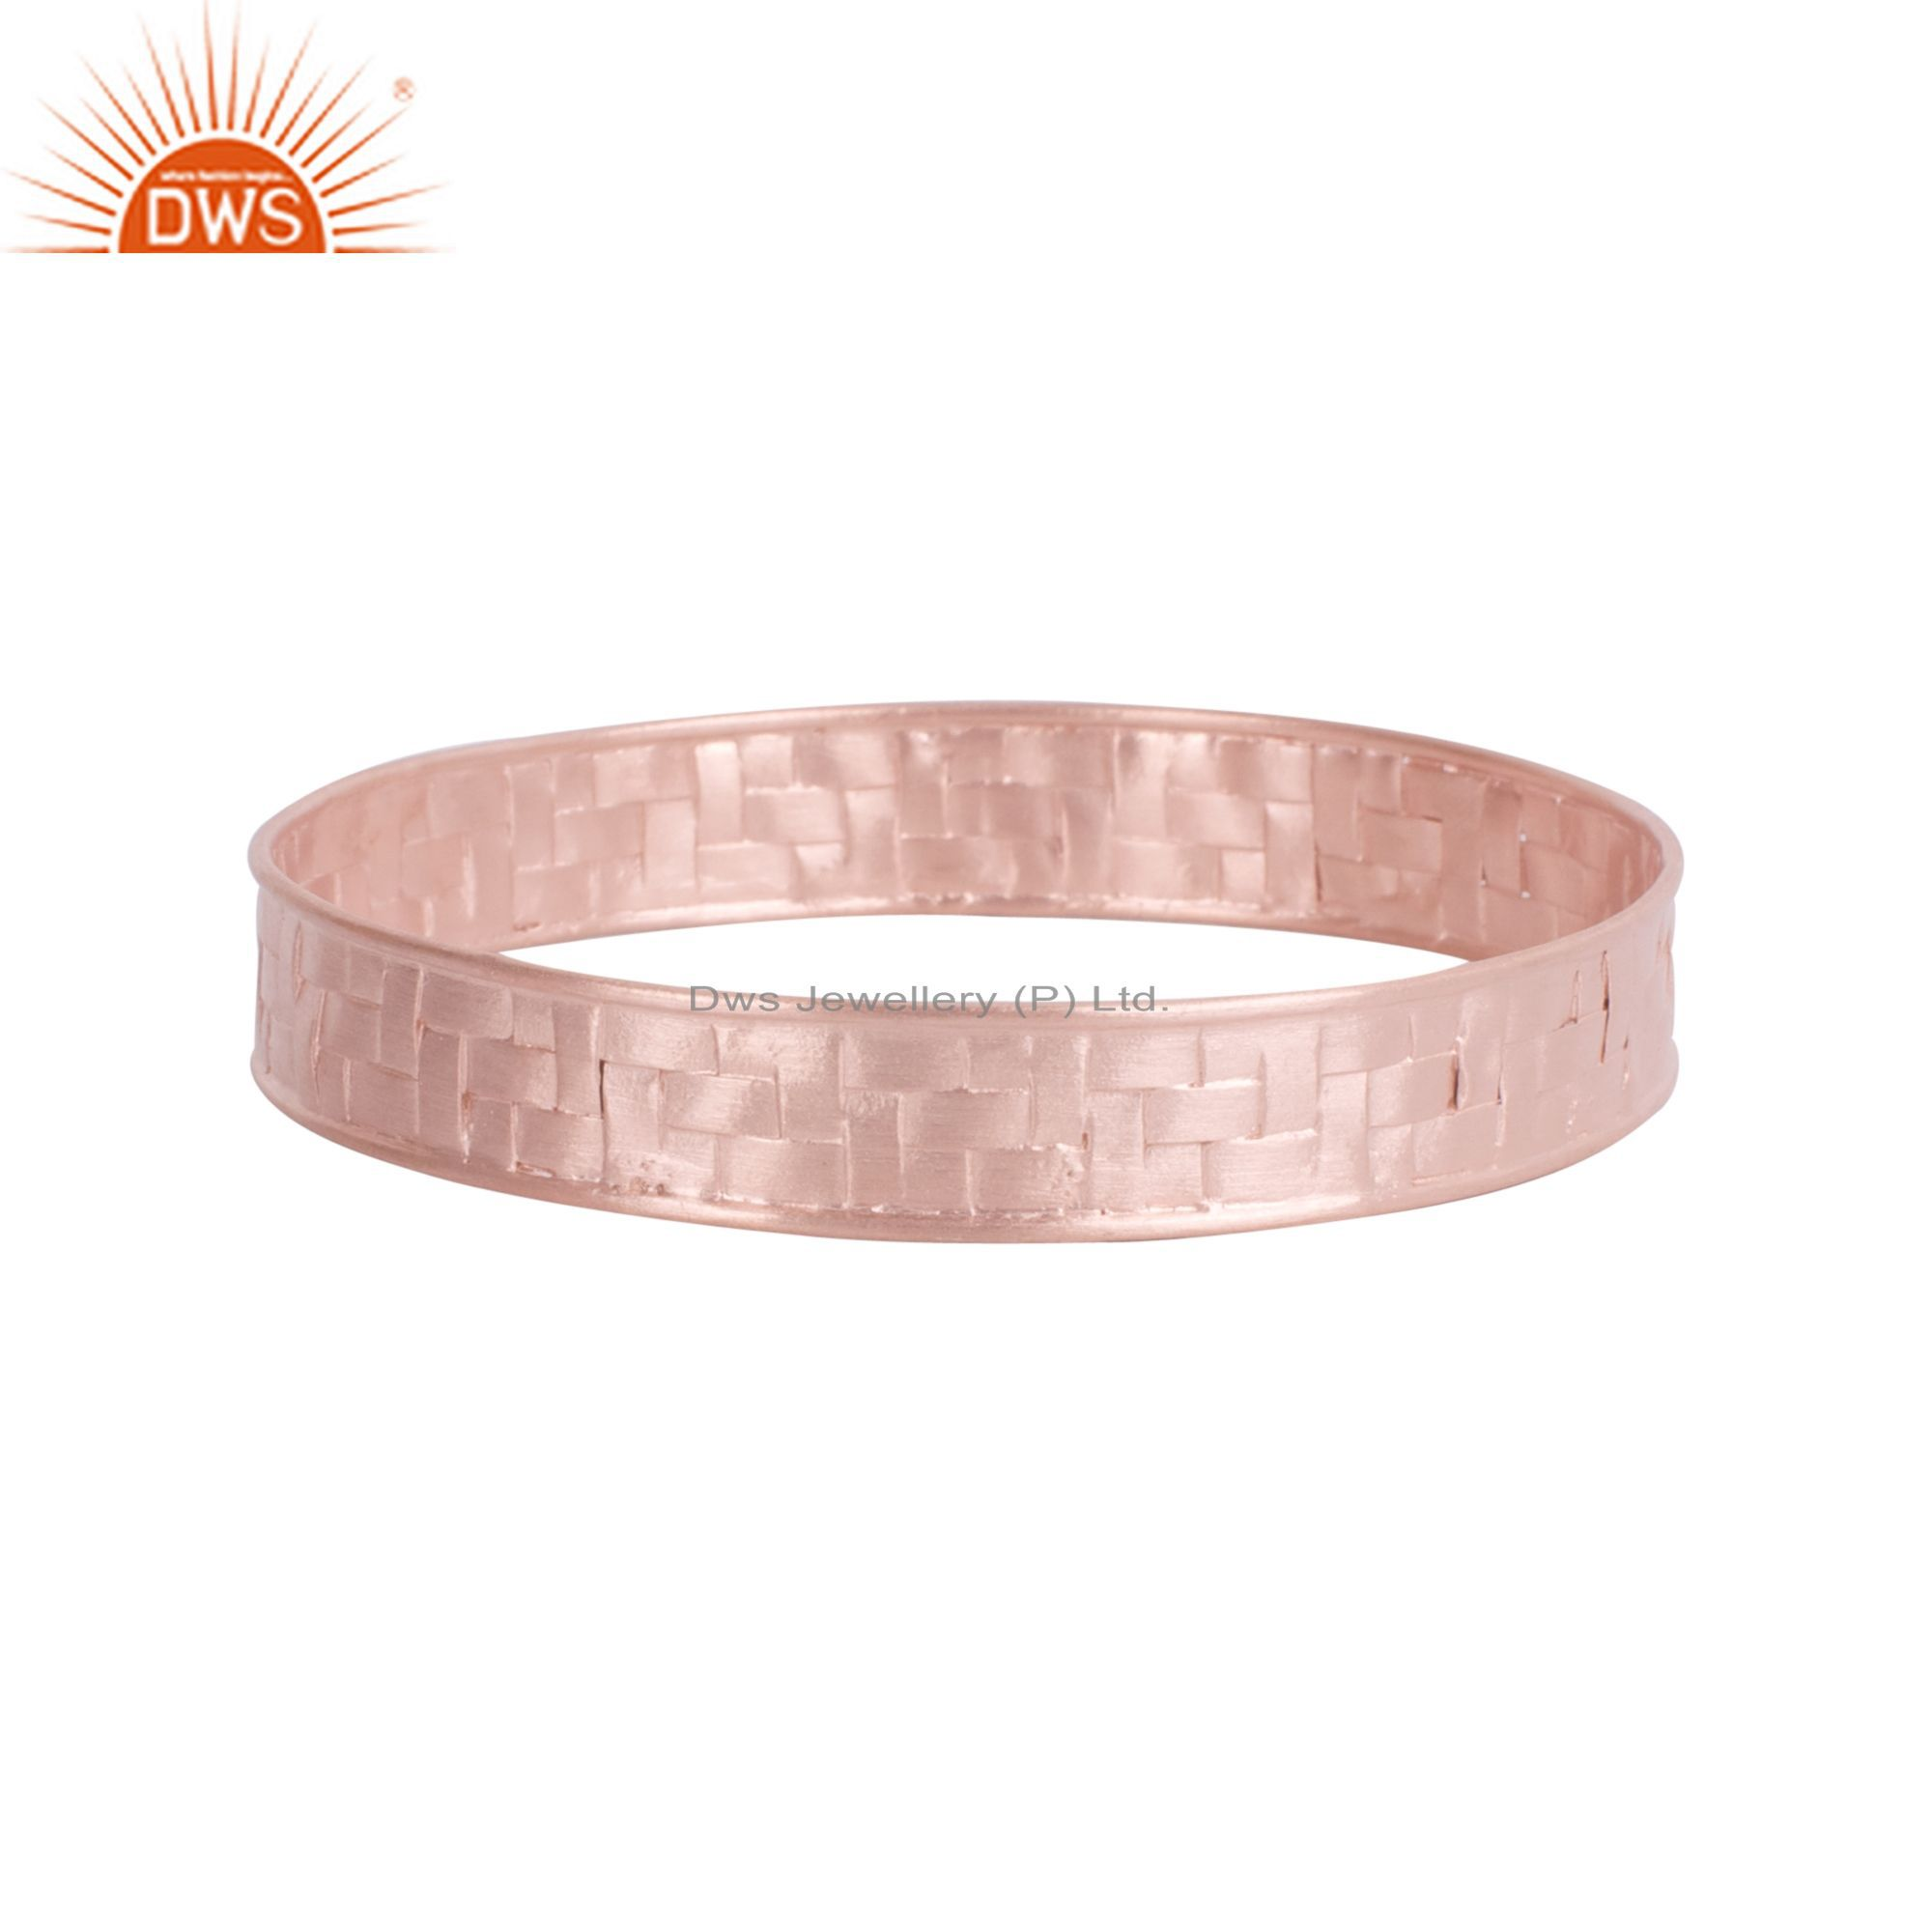 18K Rose Gold Plated Sterling Silver Hammered Woven Bangle Bracelet Jewelry